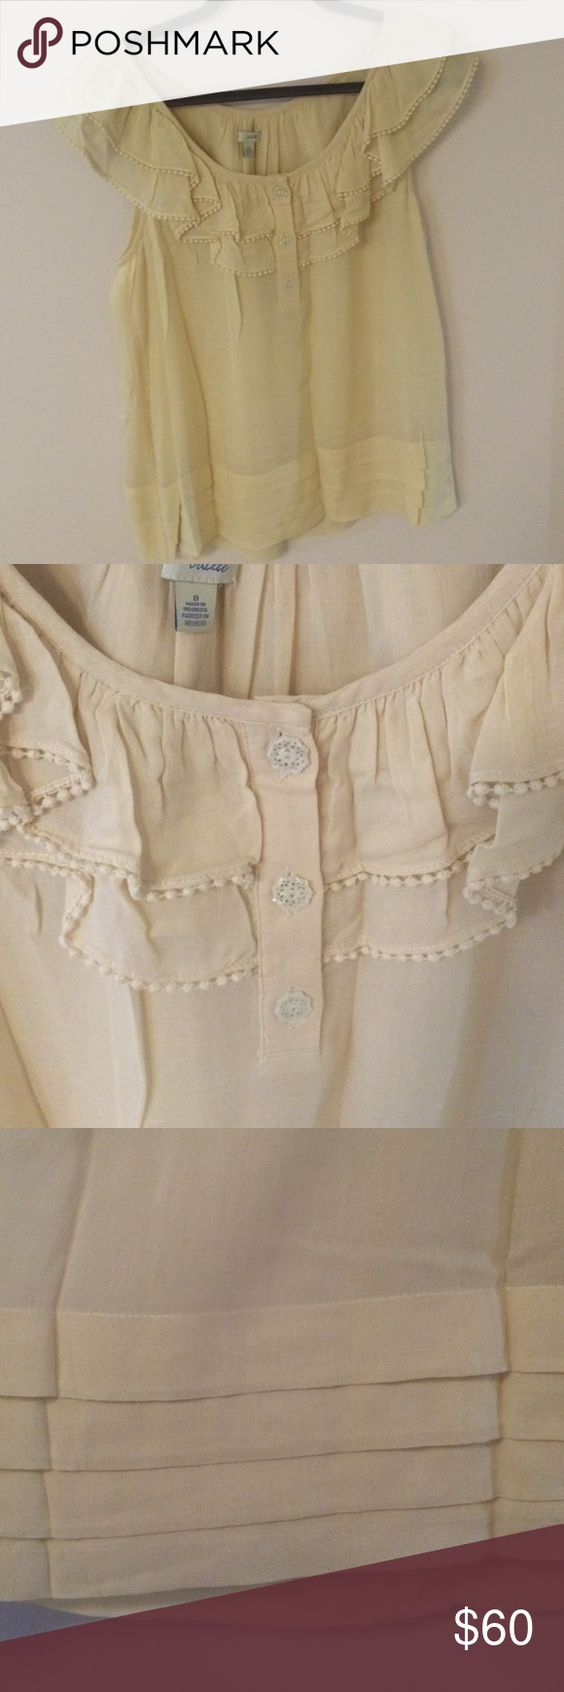 Lovely Anthropologie Blouse Upper pretty cream coloured blouse by Odille from Anthropologie. Great ruffle detail around neck with three buttons. Slight ruffle overlay at bottom hem. Worn once, like new! Bundle and save 25%! Anthropologie Tops Blouses